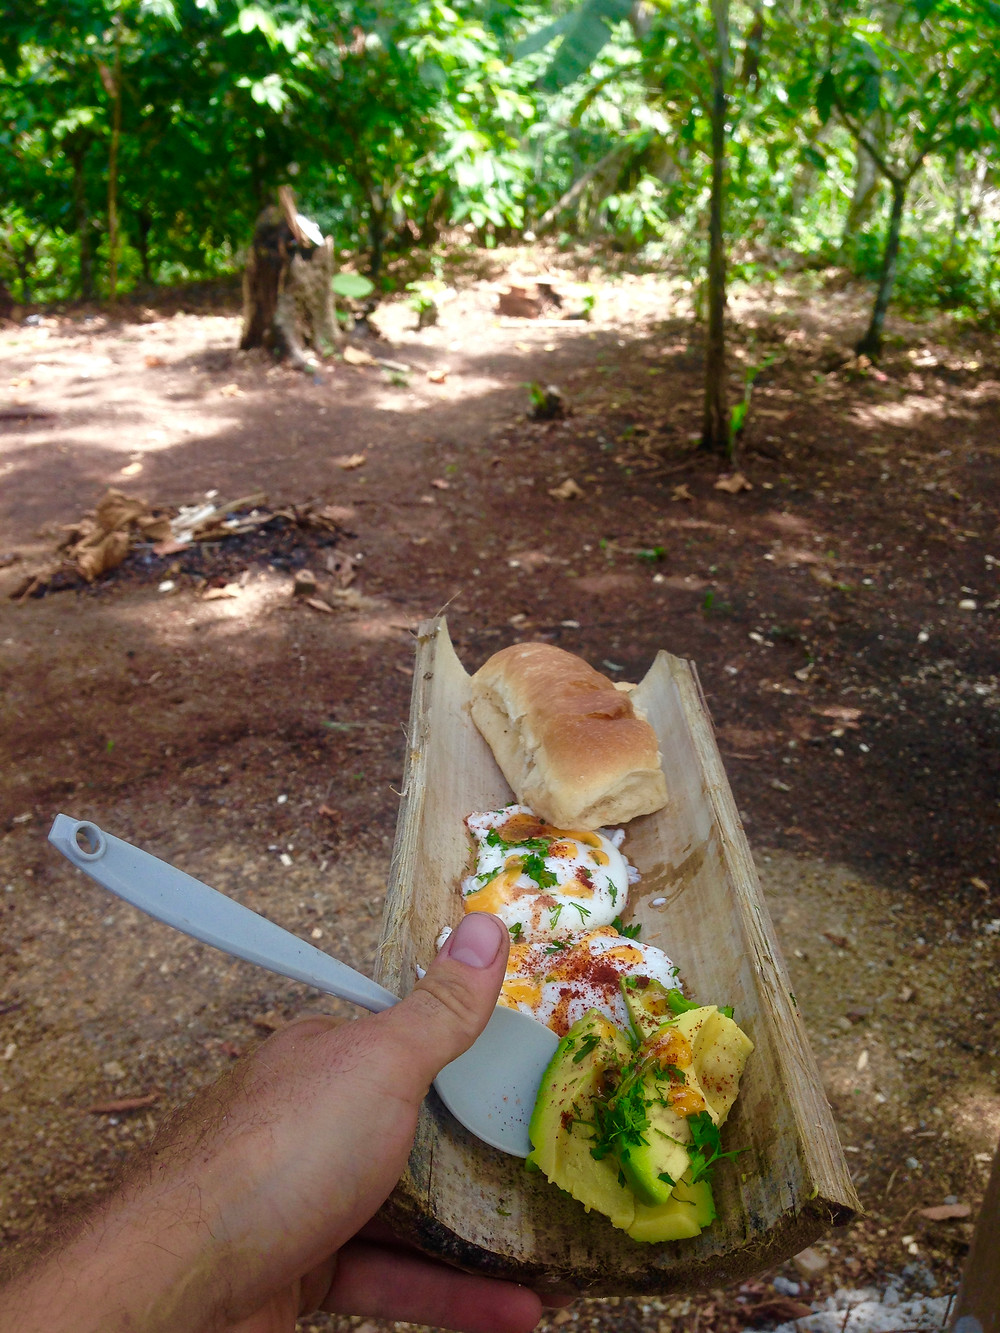 Surfer food served everyday at High Mountain Jungle Finca